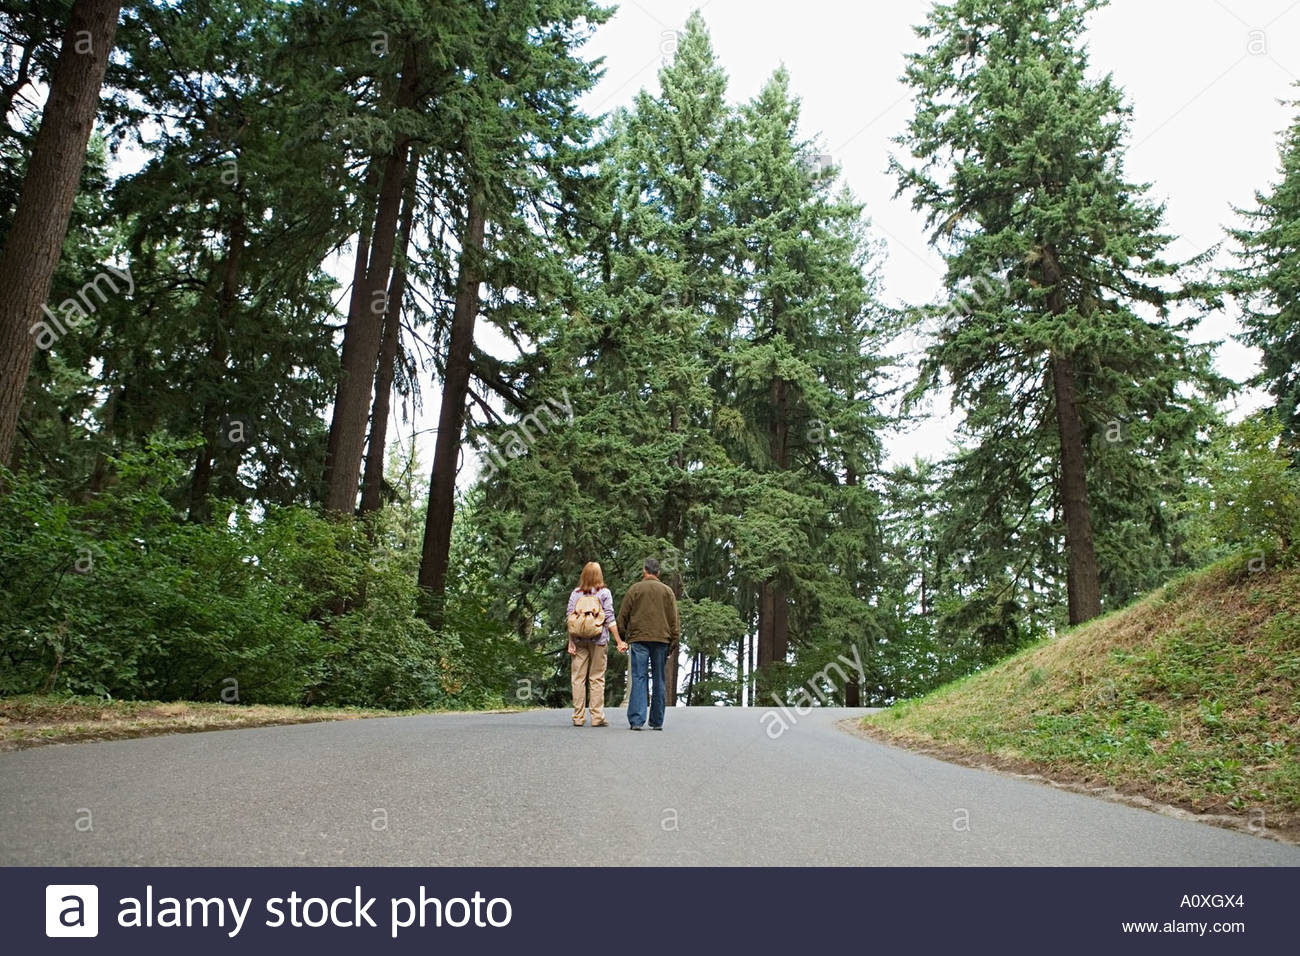 Couple walking on road through forest - Stock Image